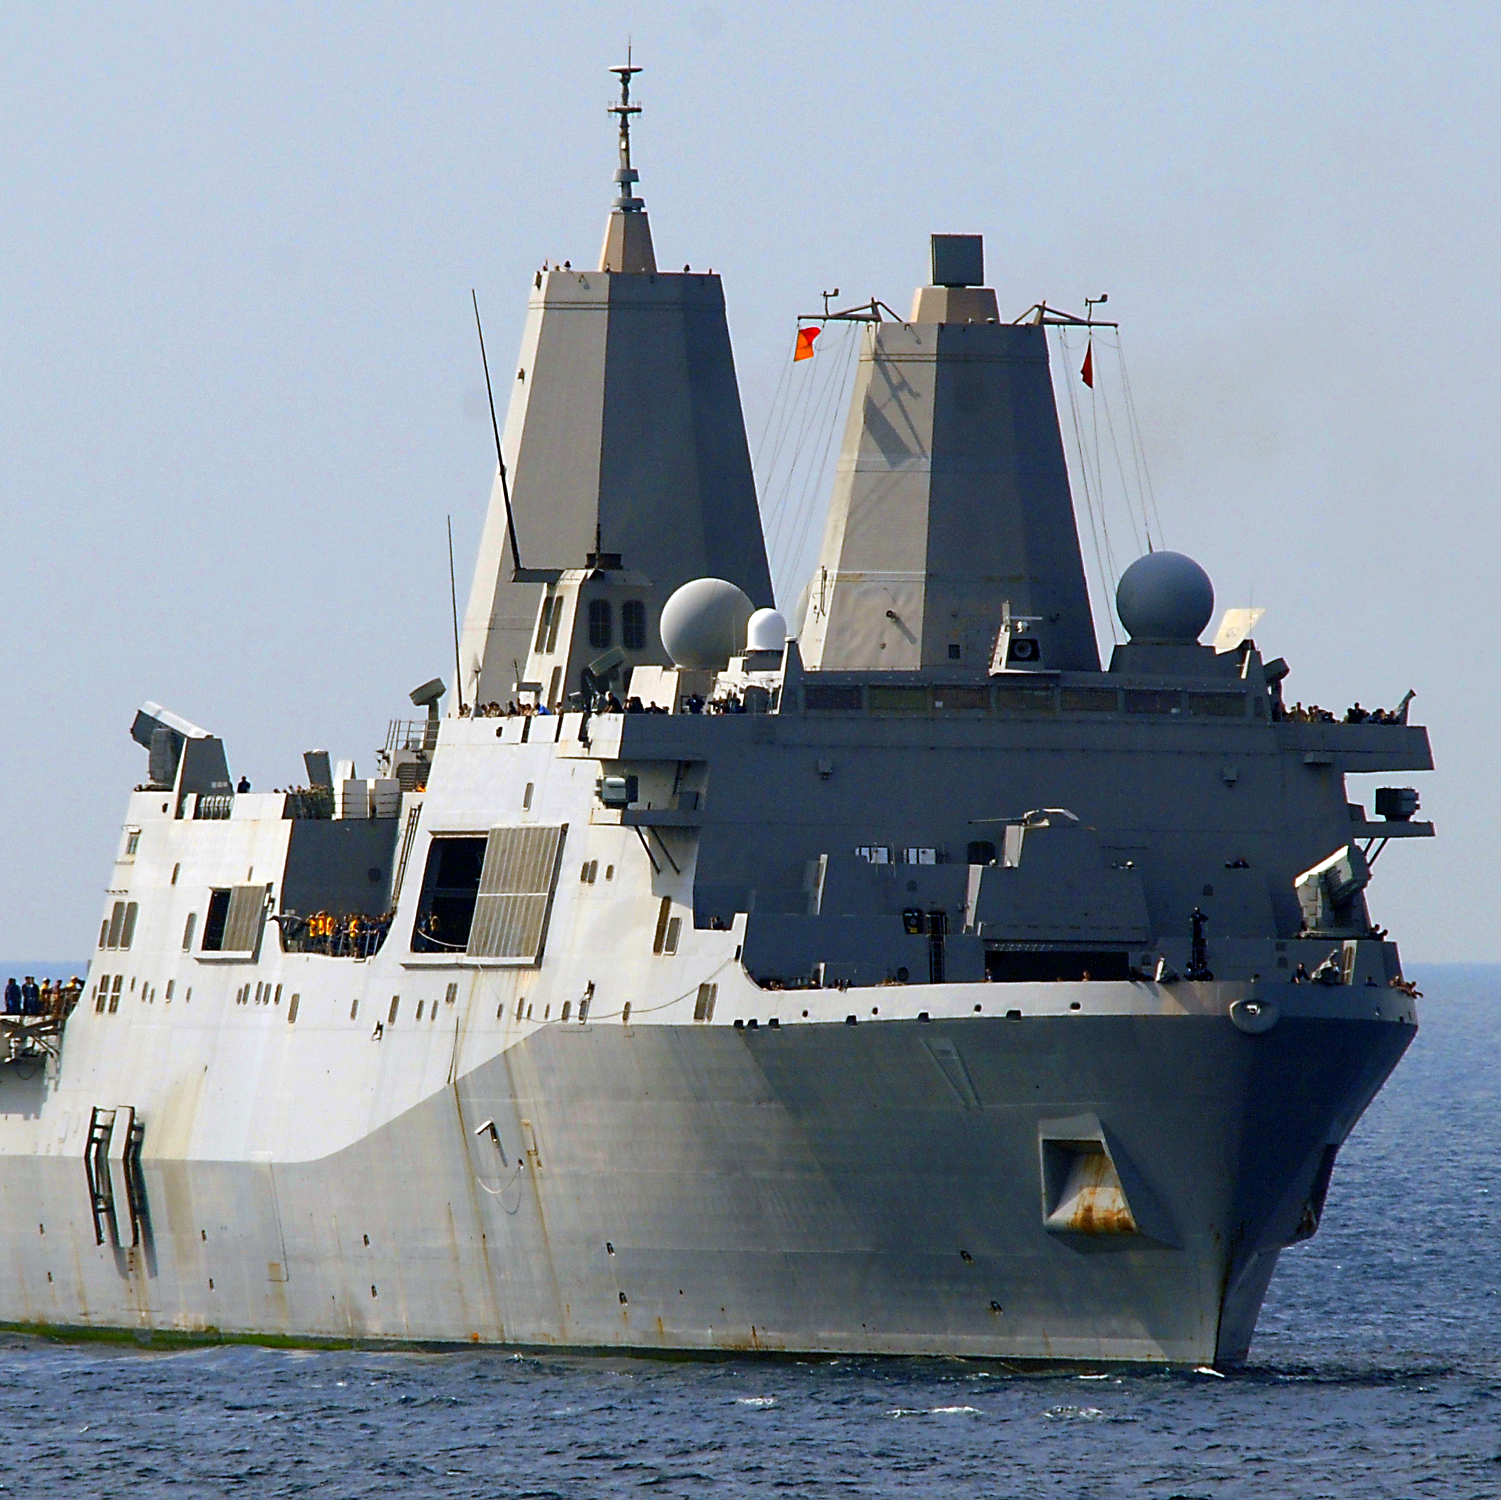 Terror suspect Abu Anas al-Libi is reportedly being questioned on the USS San Antonio in the Mediterranean after he was seized in Libya on Saturday. The transport ship is shown here in a 2009 photo.